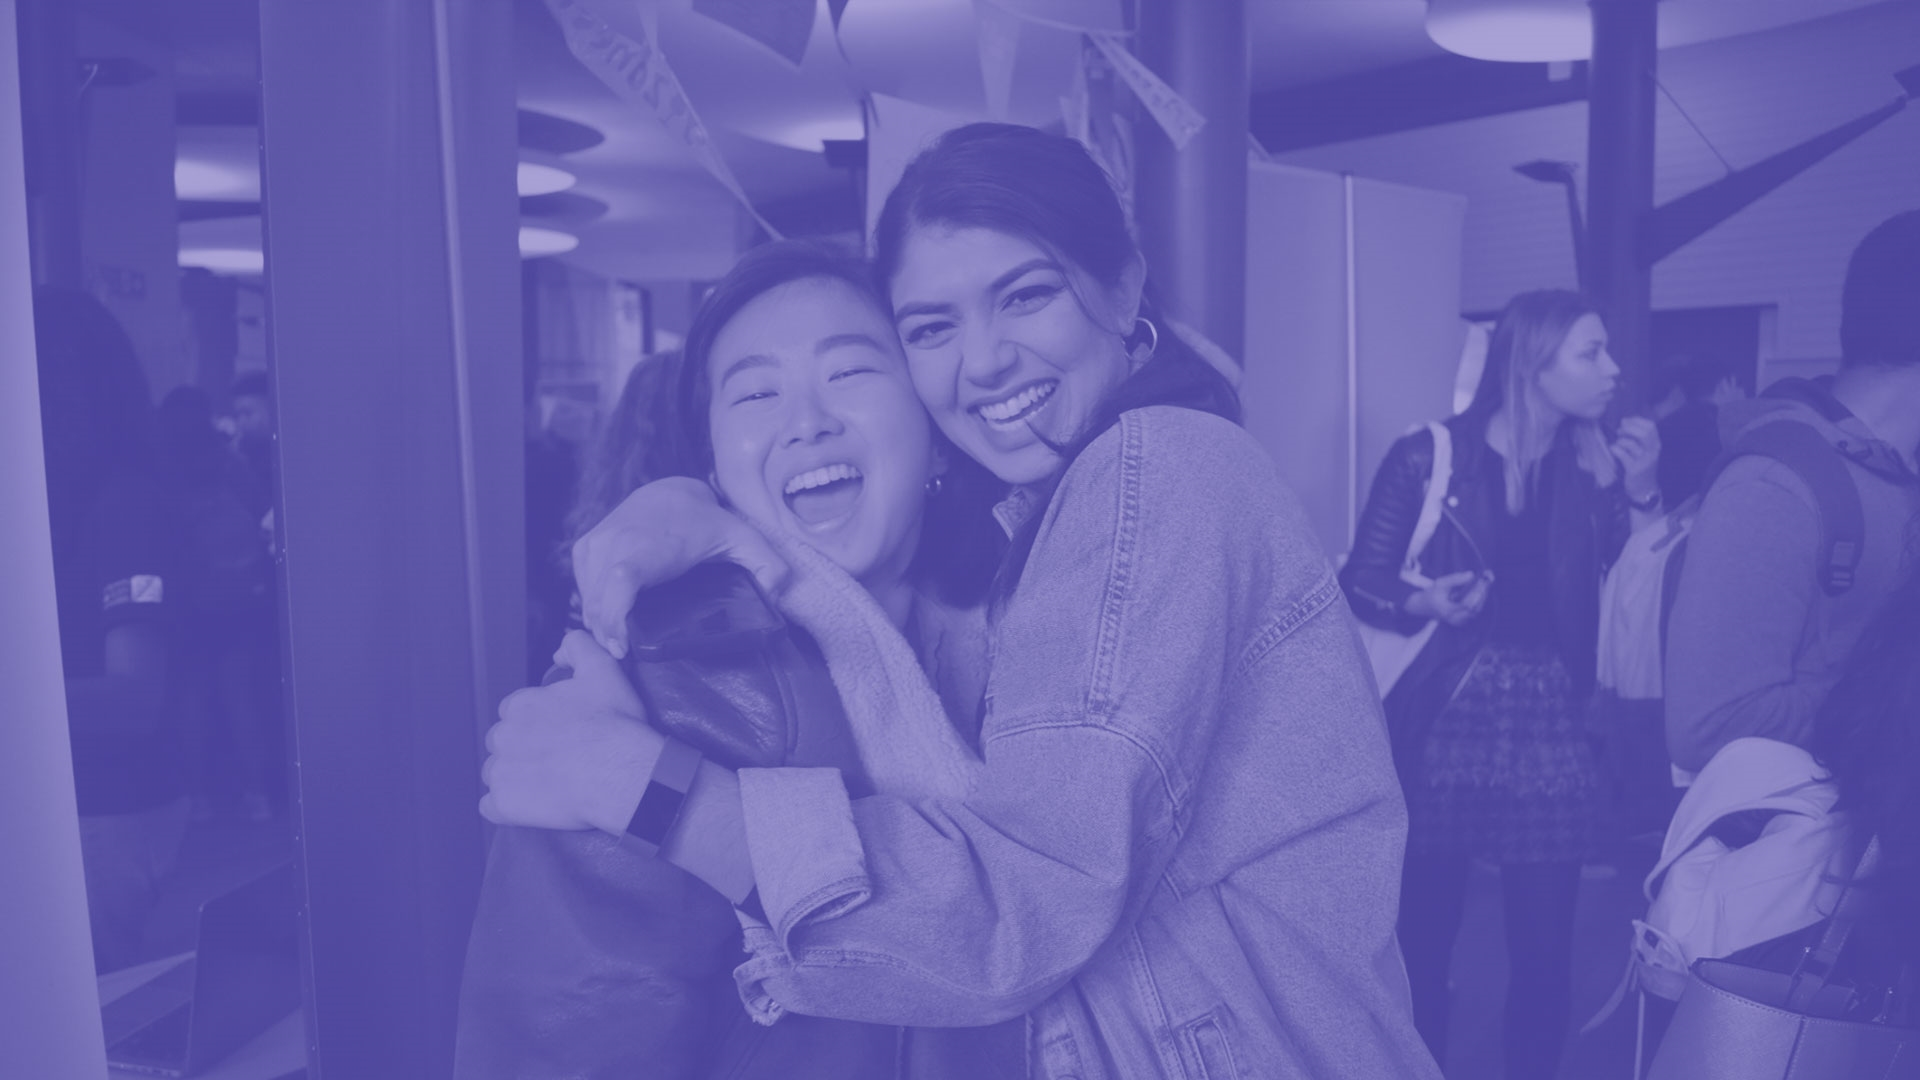 Two students smiling and hugging each other